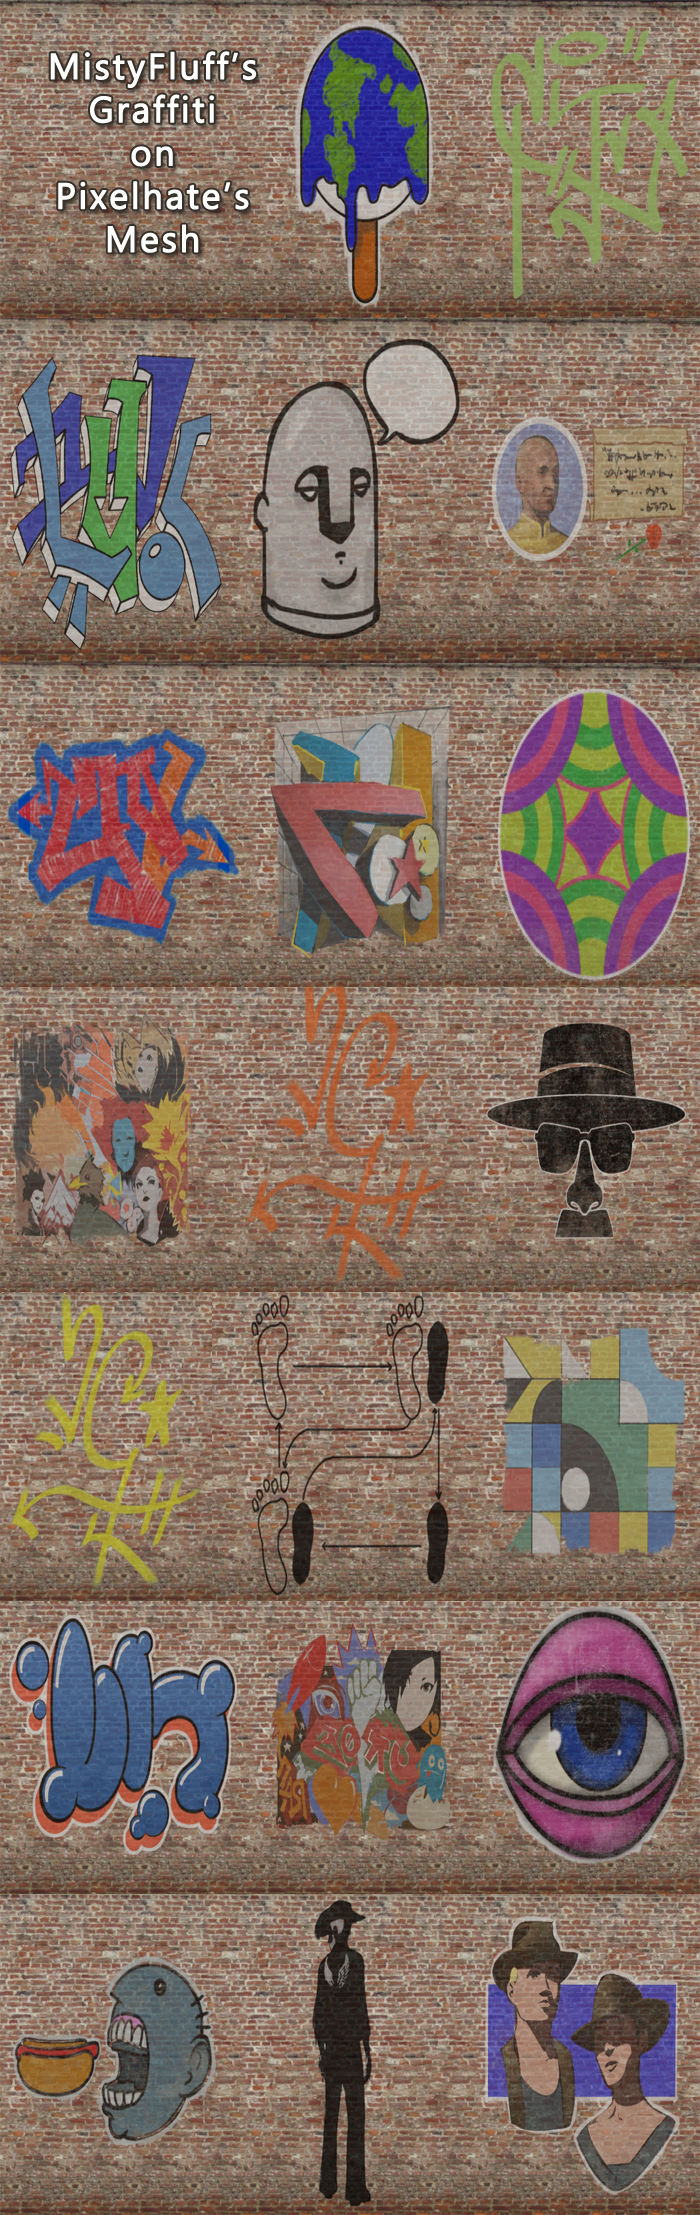 Graffiti-from-Sims-for-Sims-wallpaper-wp425838